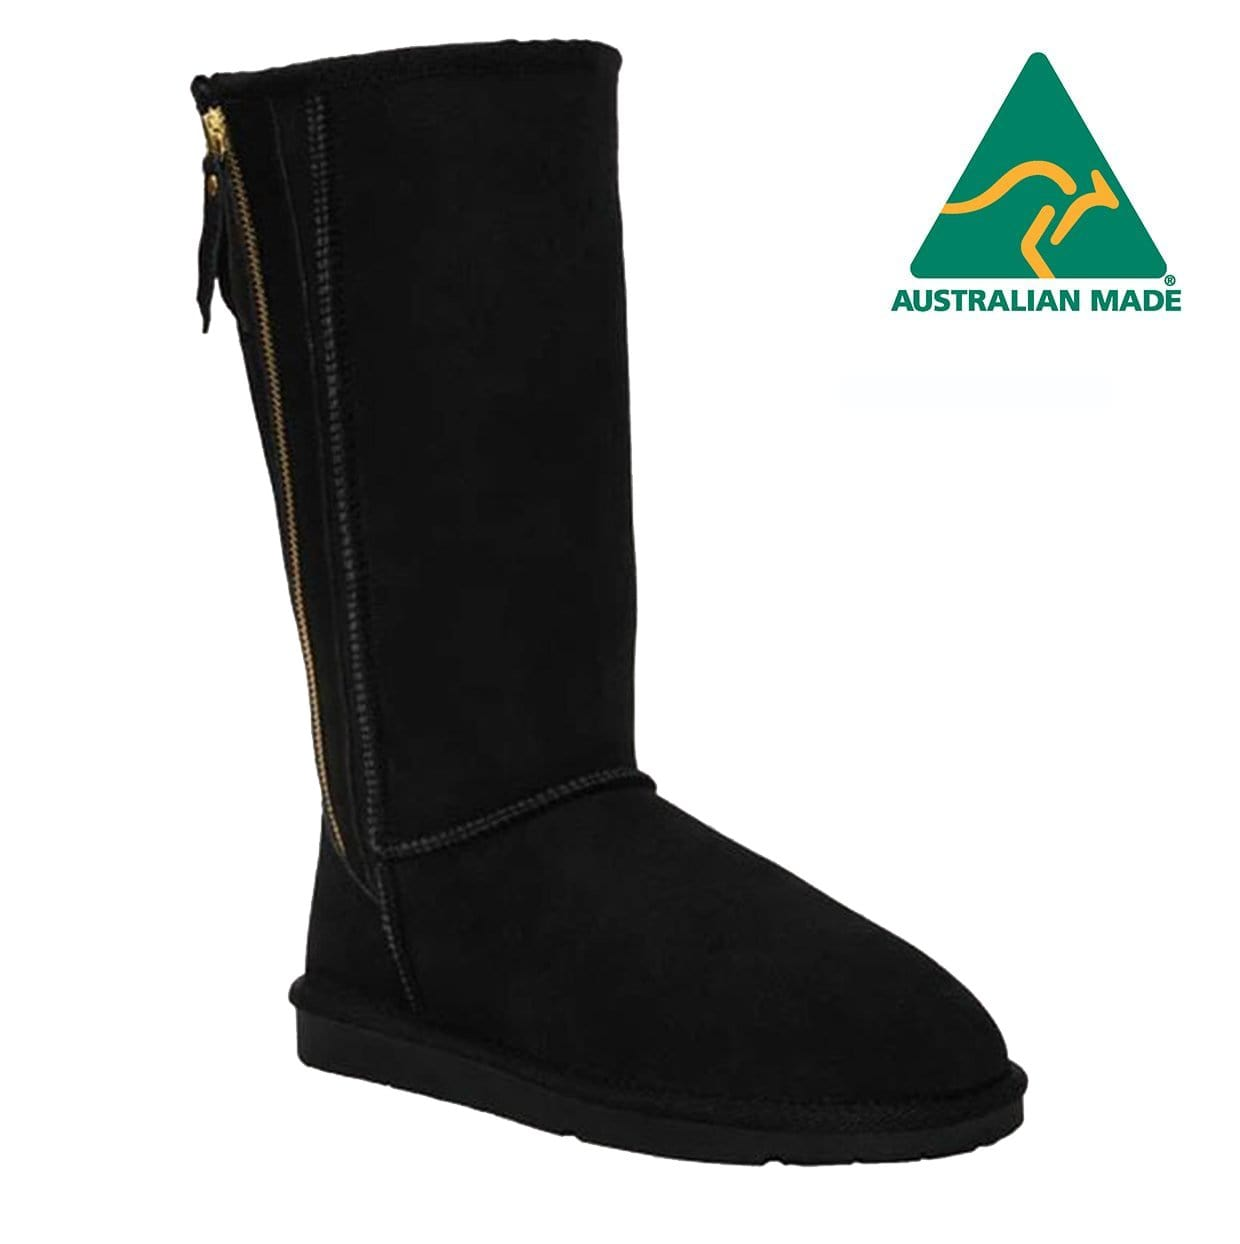 UGG Tall Zip - Made in Australia